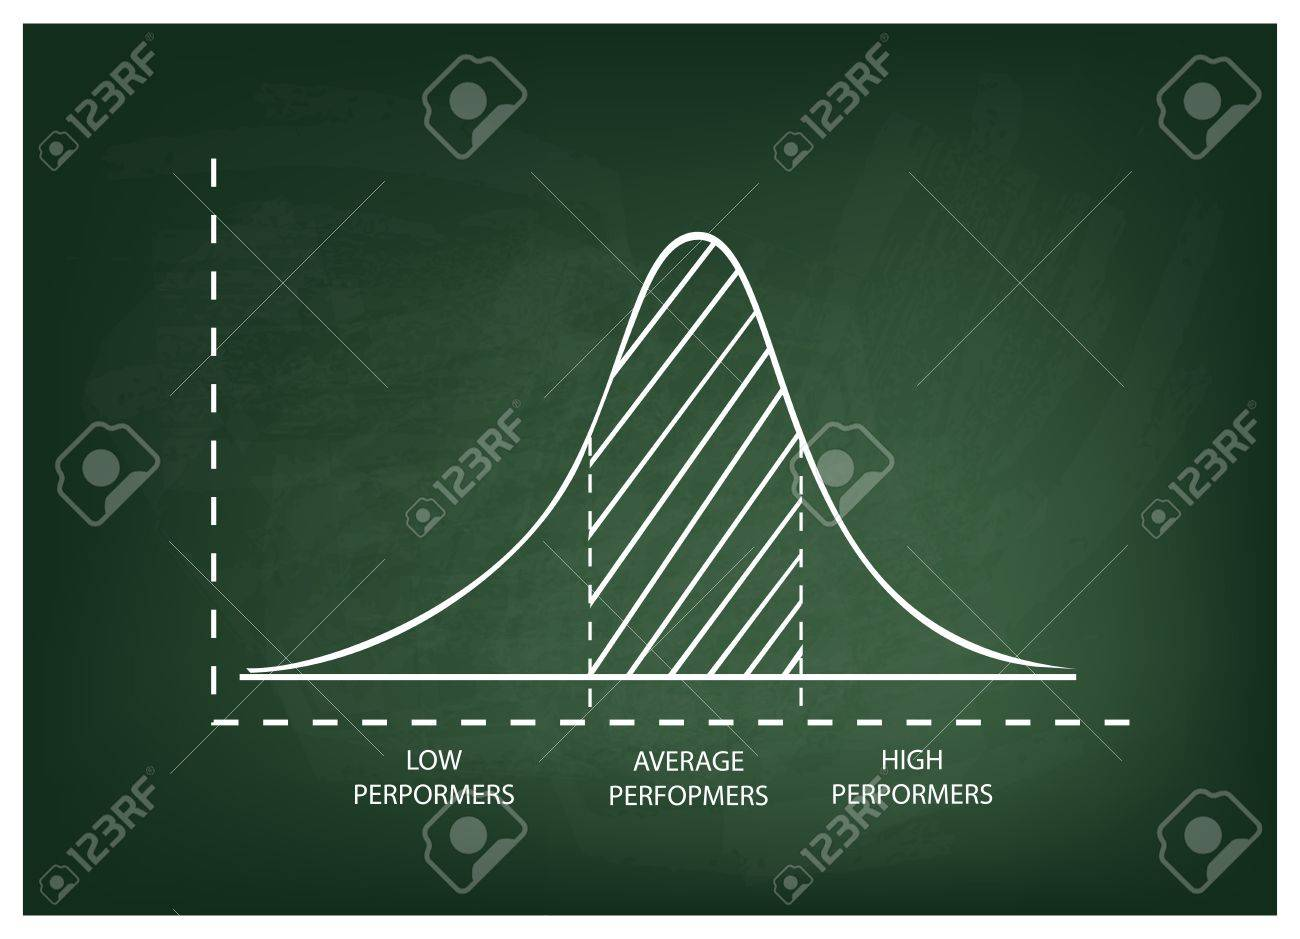 Business and Marketing Concepts, Illustration of Standard Deviation, Gaussian Bell or Normal Distribution Curve on A Green Chalkboard Background. - 60944289